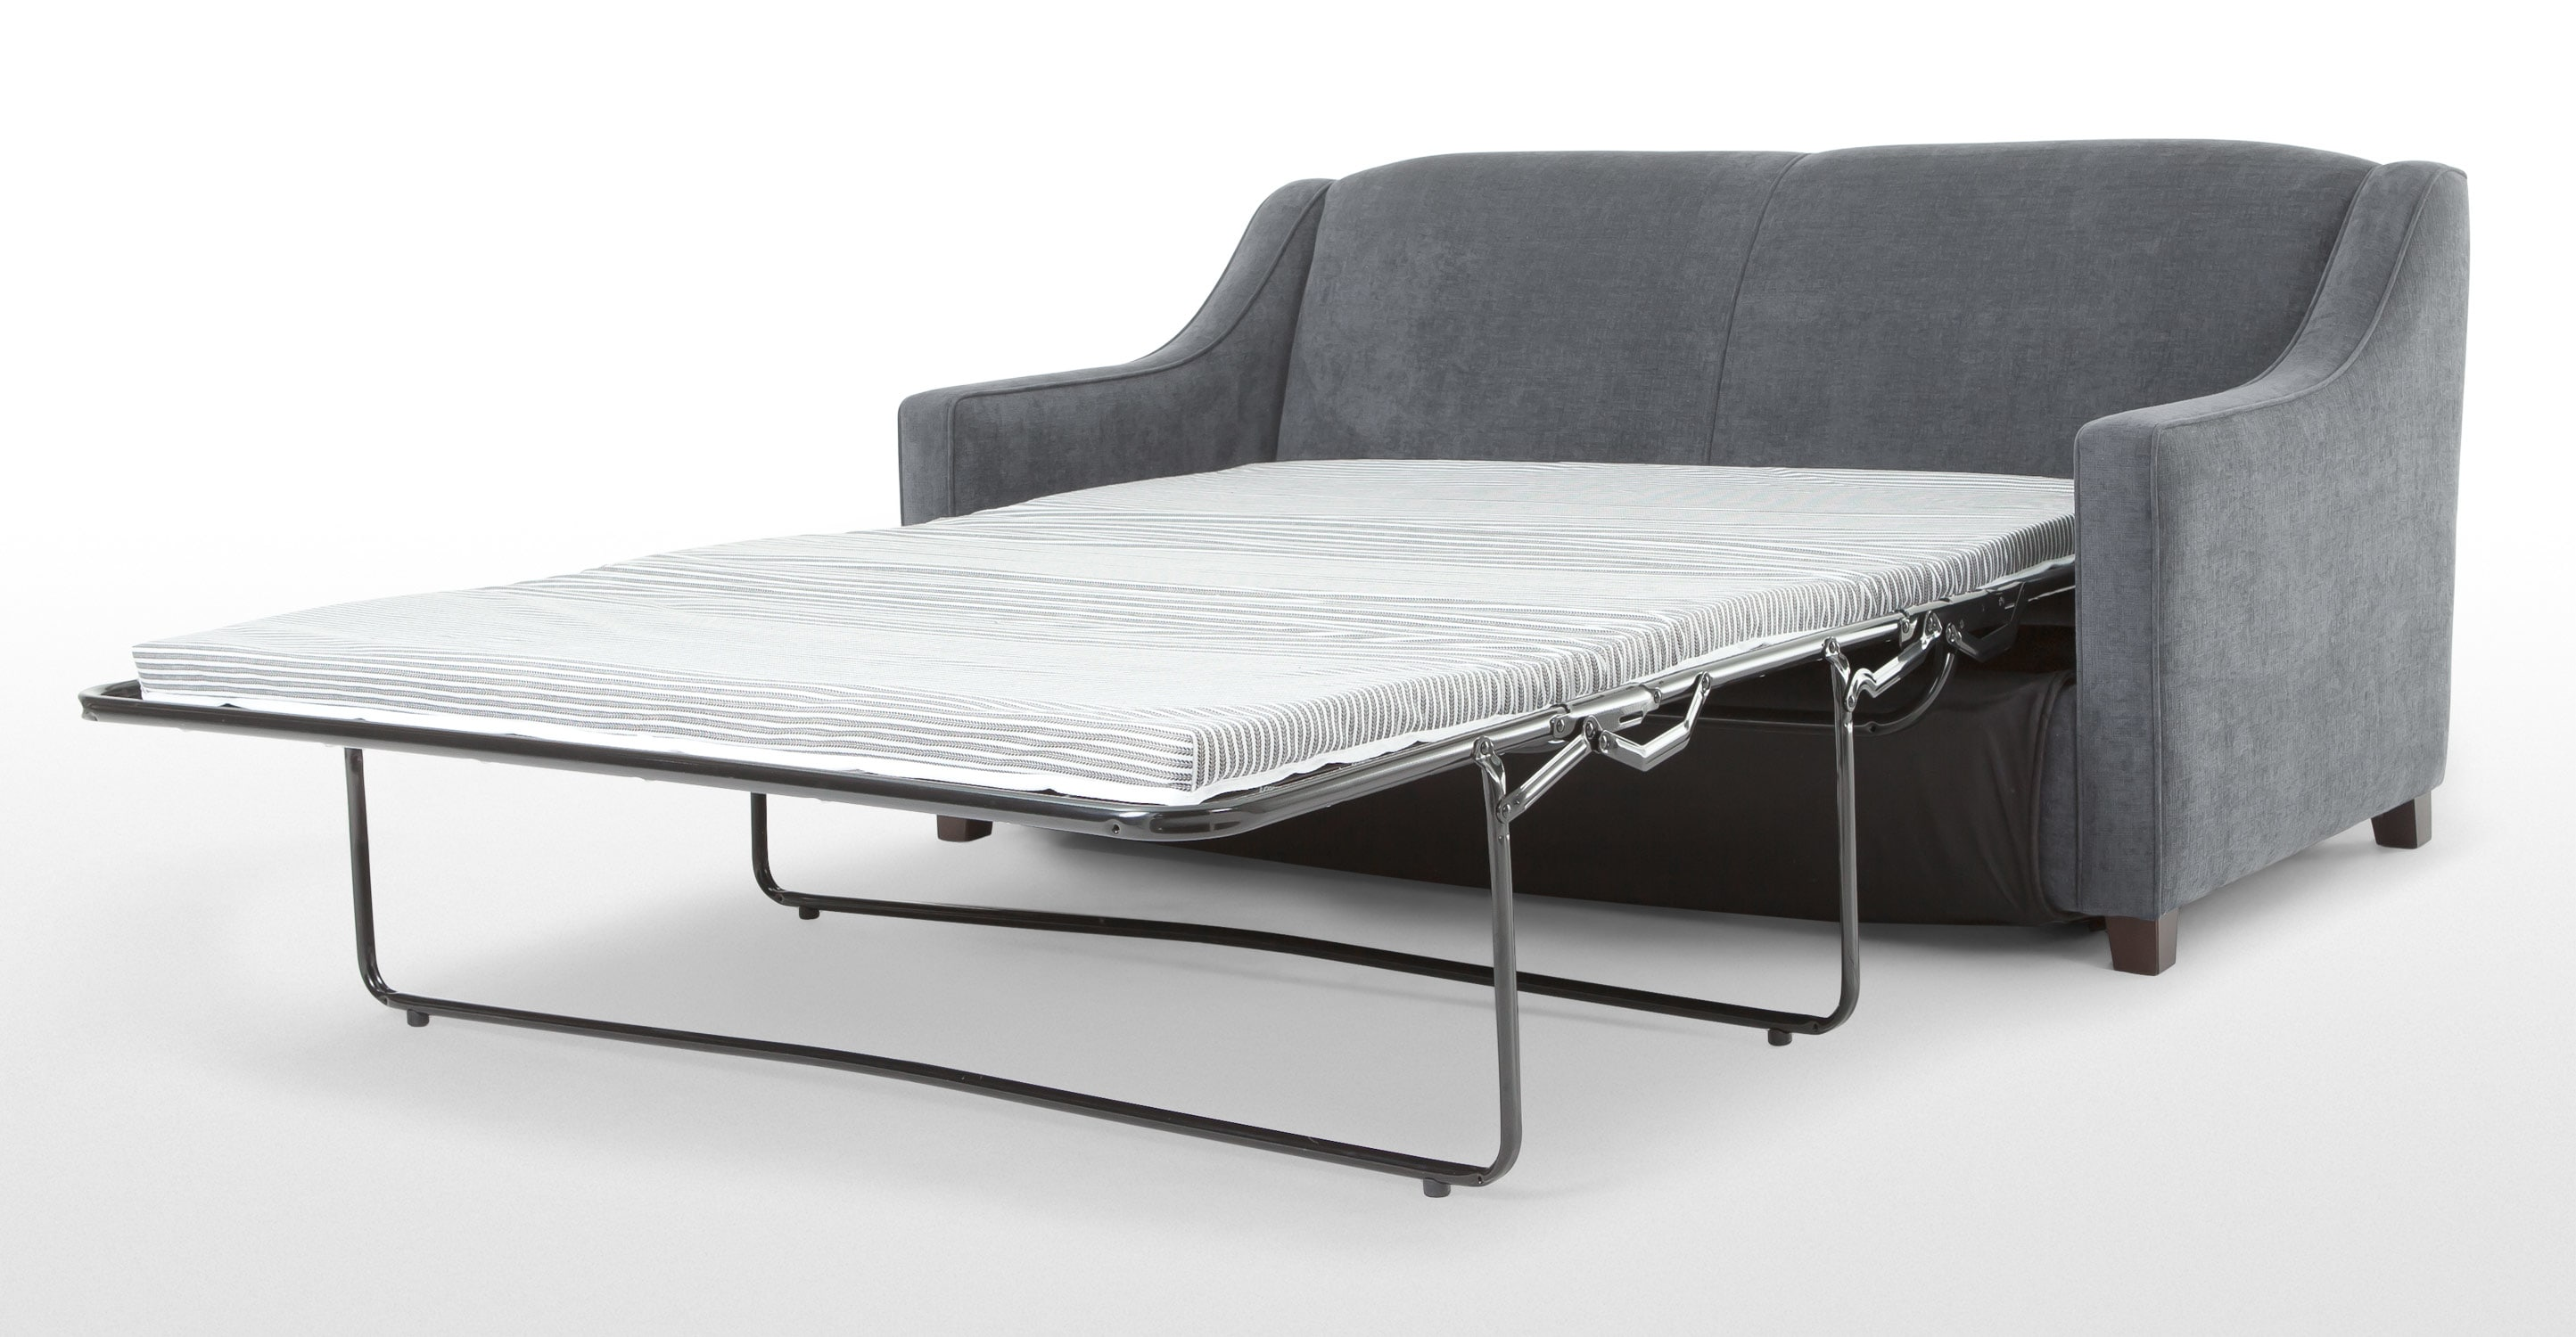 Ikea Futon Beds | Balkarp Sofa Bed | Karlstad Sofa Bed